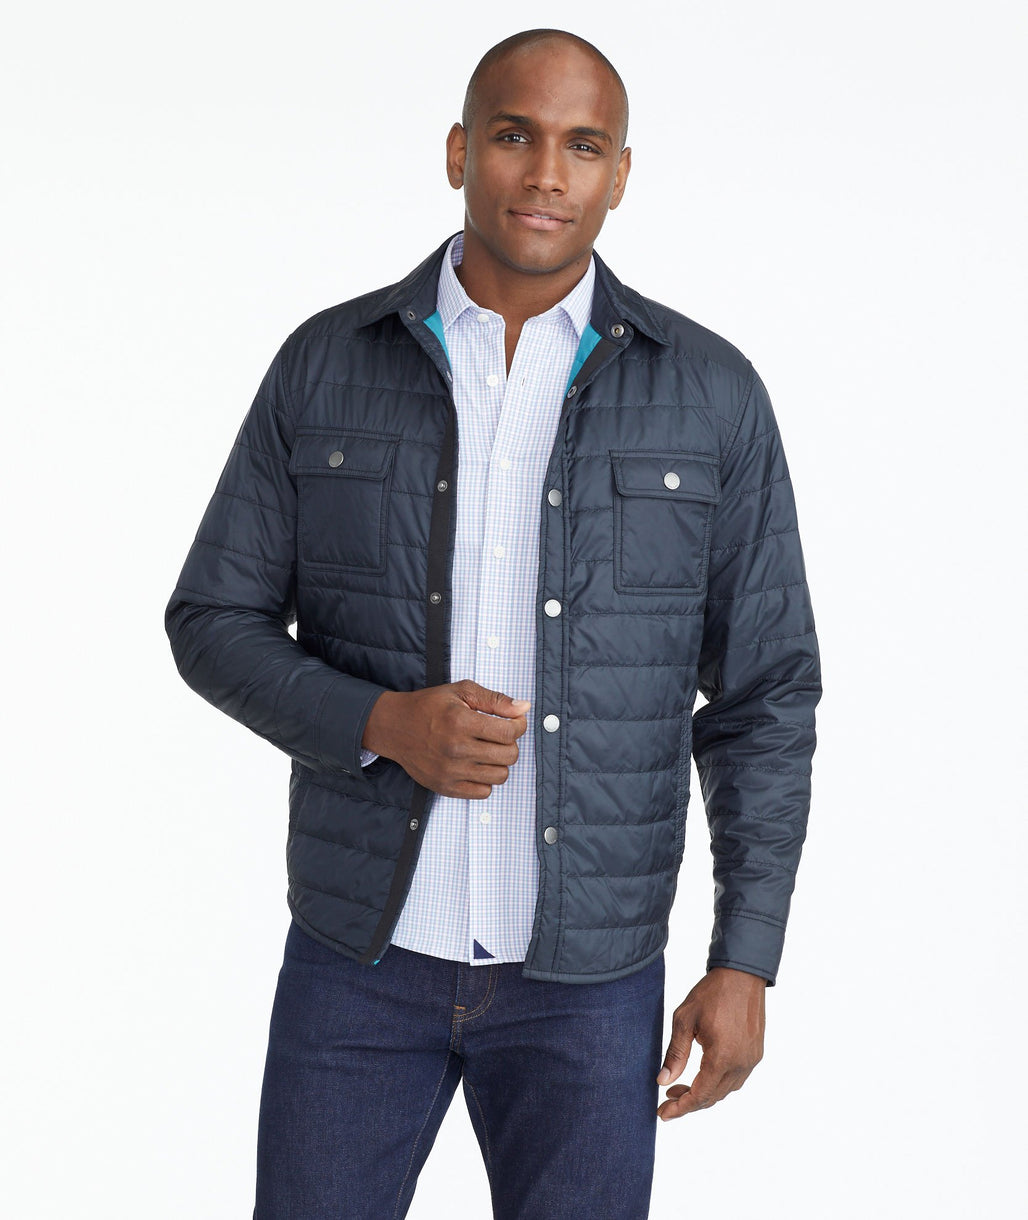 Model wearing a Black Insulated Shirt Jacket